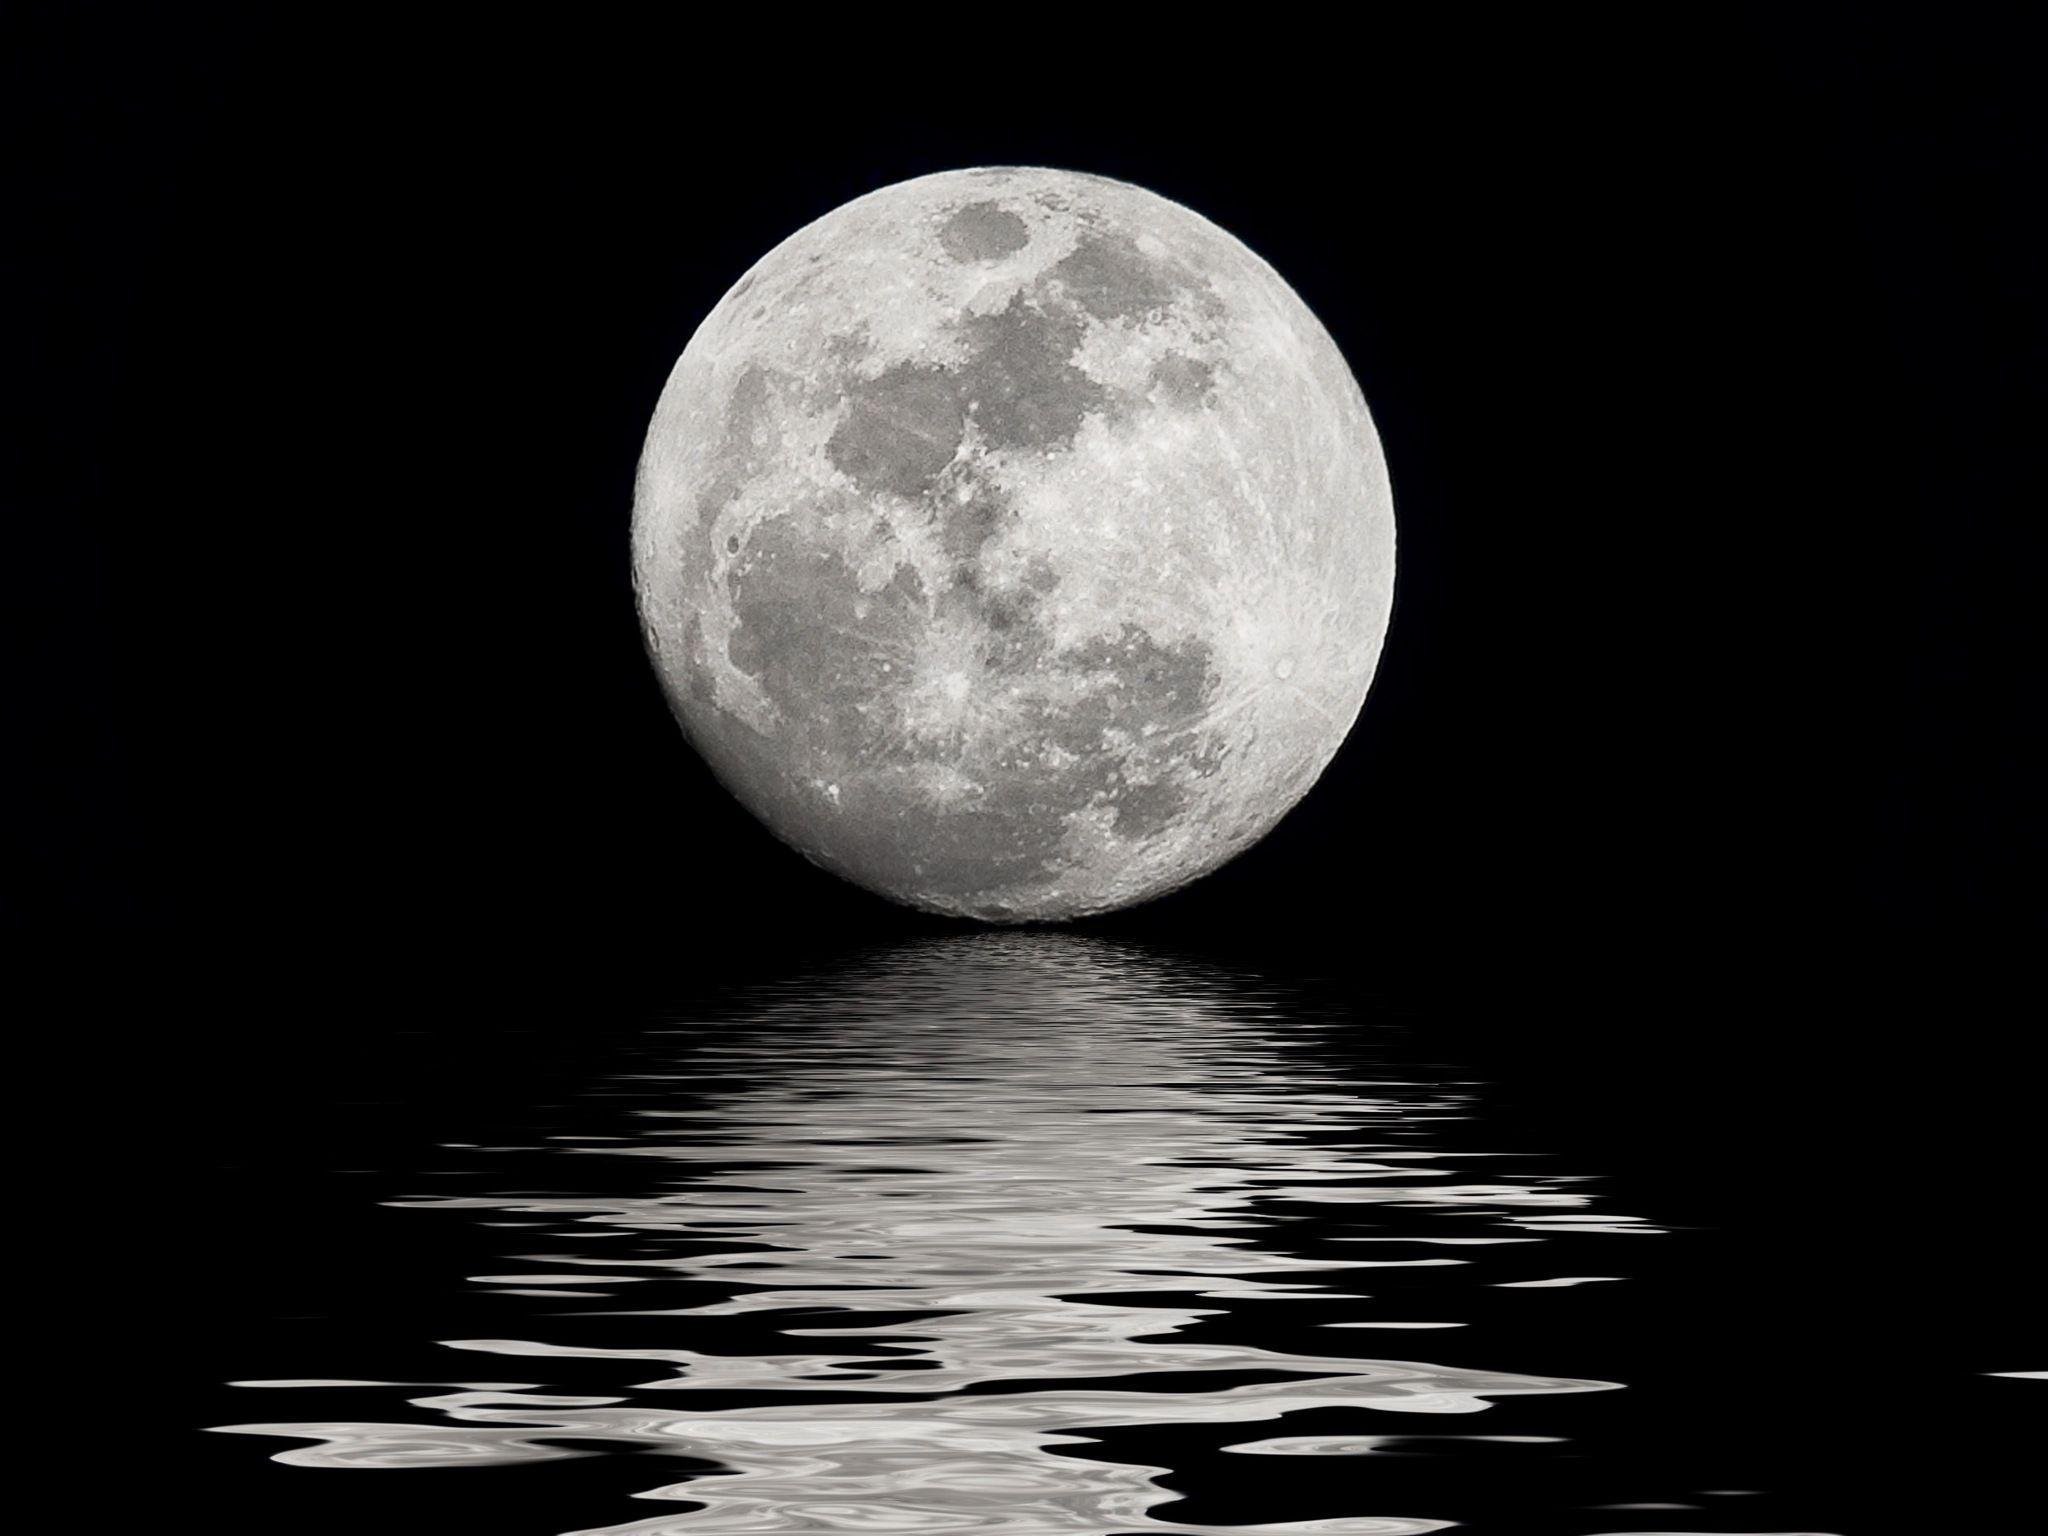 Moon Sea HD Wallpaper | Moon and Sea Images | Cool Wallpapers